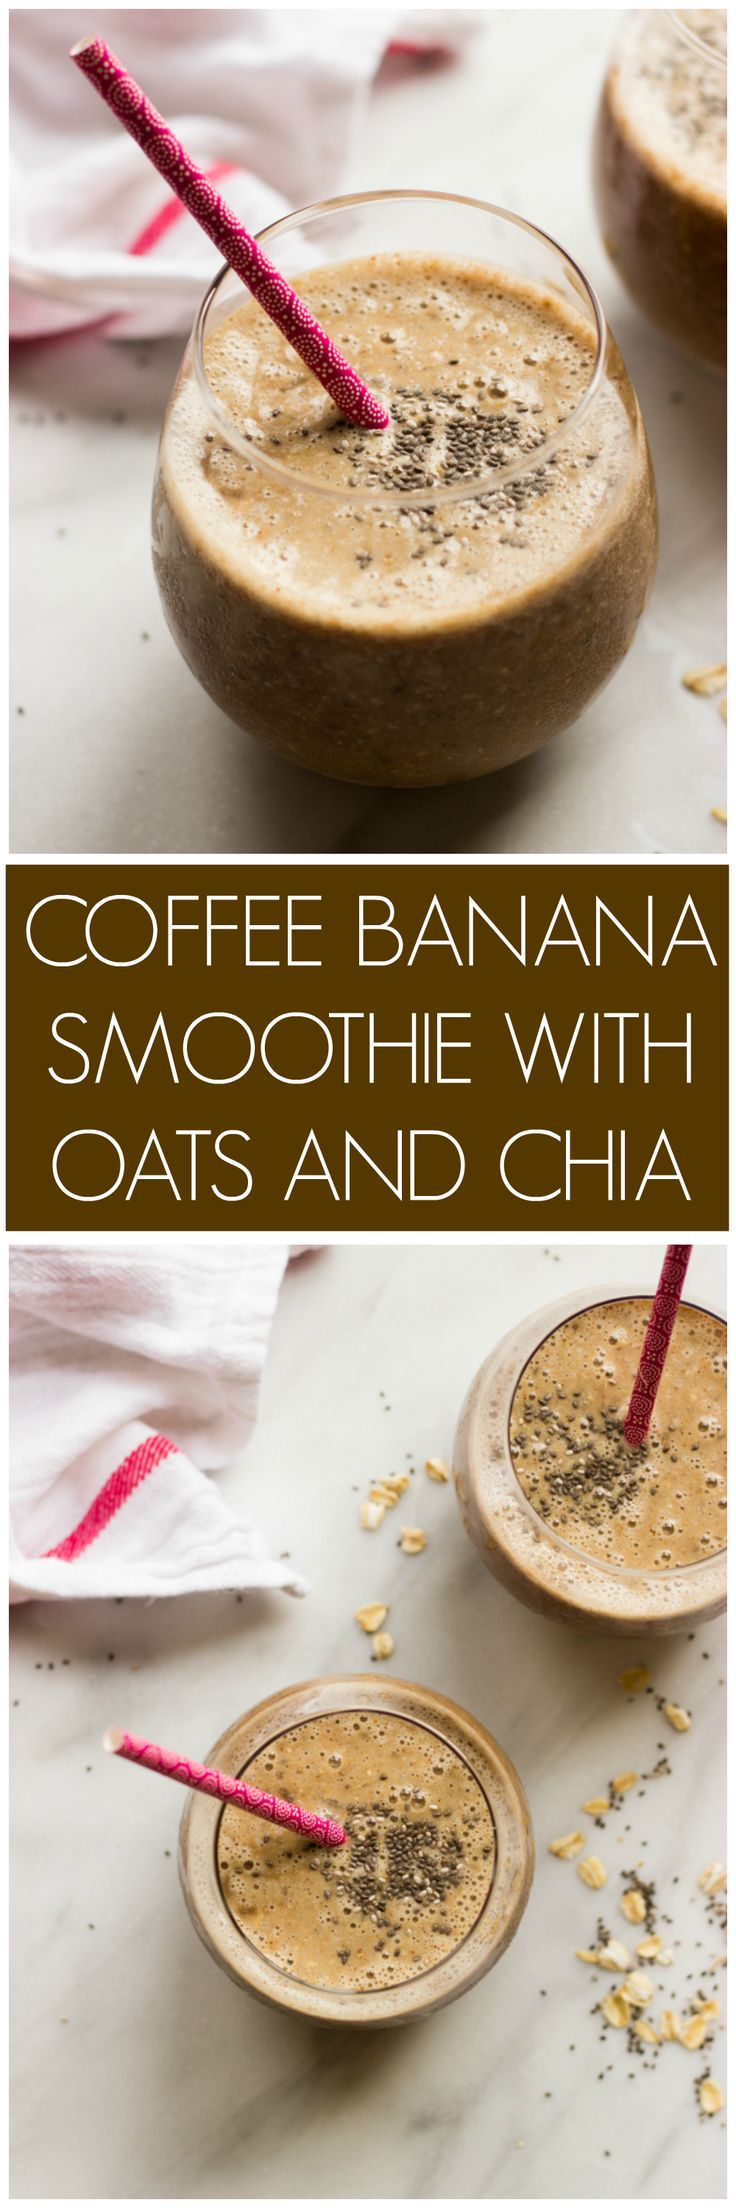 Coffee Banana Smoothie with Oats and Chia - coffee and a smoothie in one! Made with healthy ingredients. | littlebroken.com @littlebroken